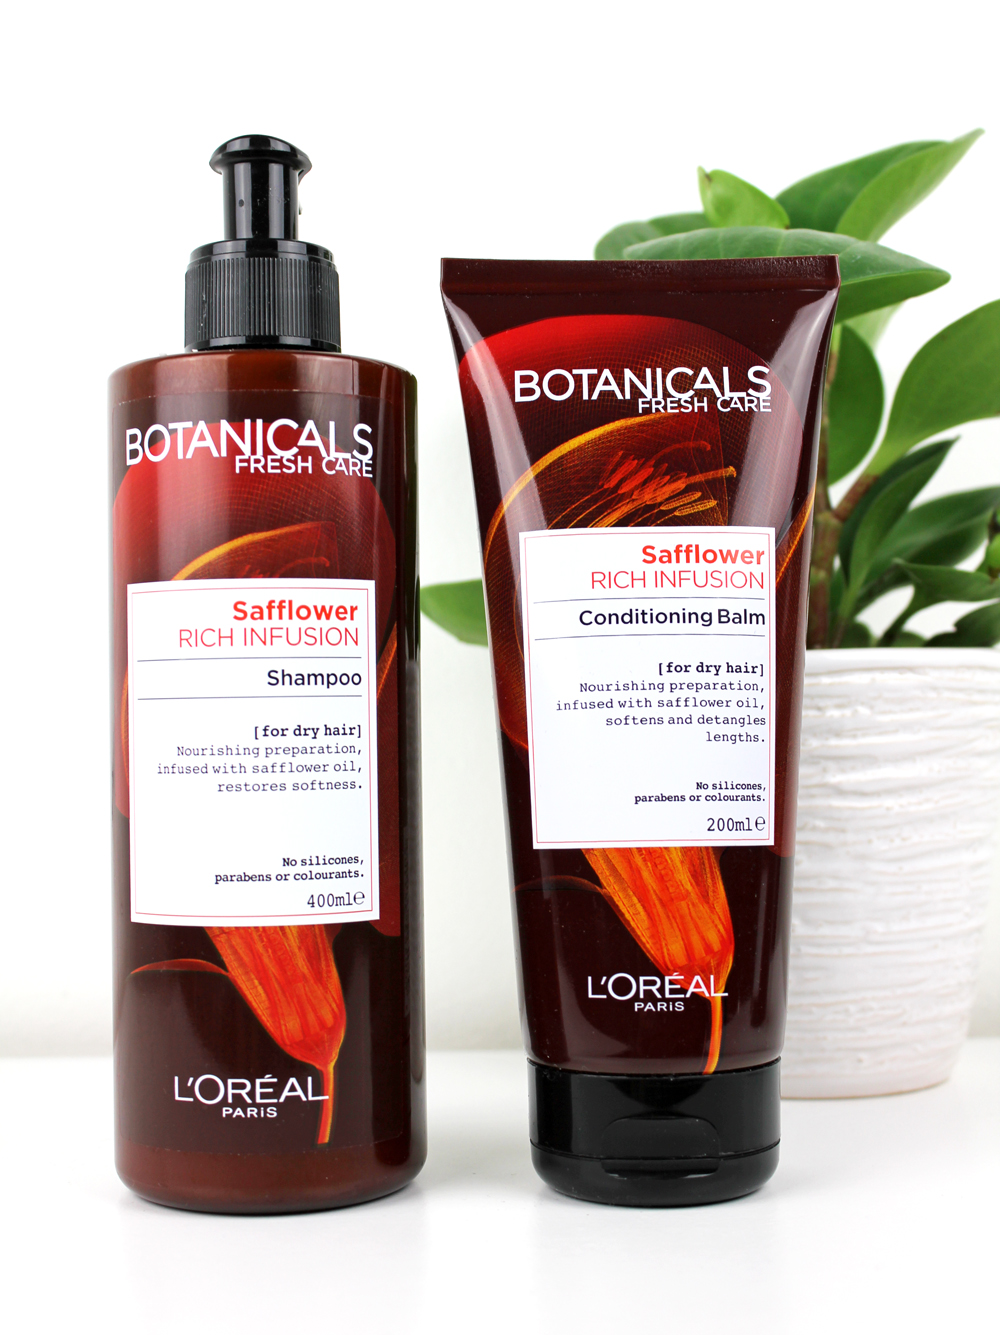 L´Oreal Botanicals Rich Infusion Shampoo and Conditioner